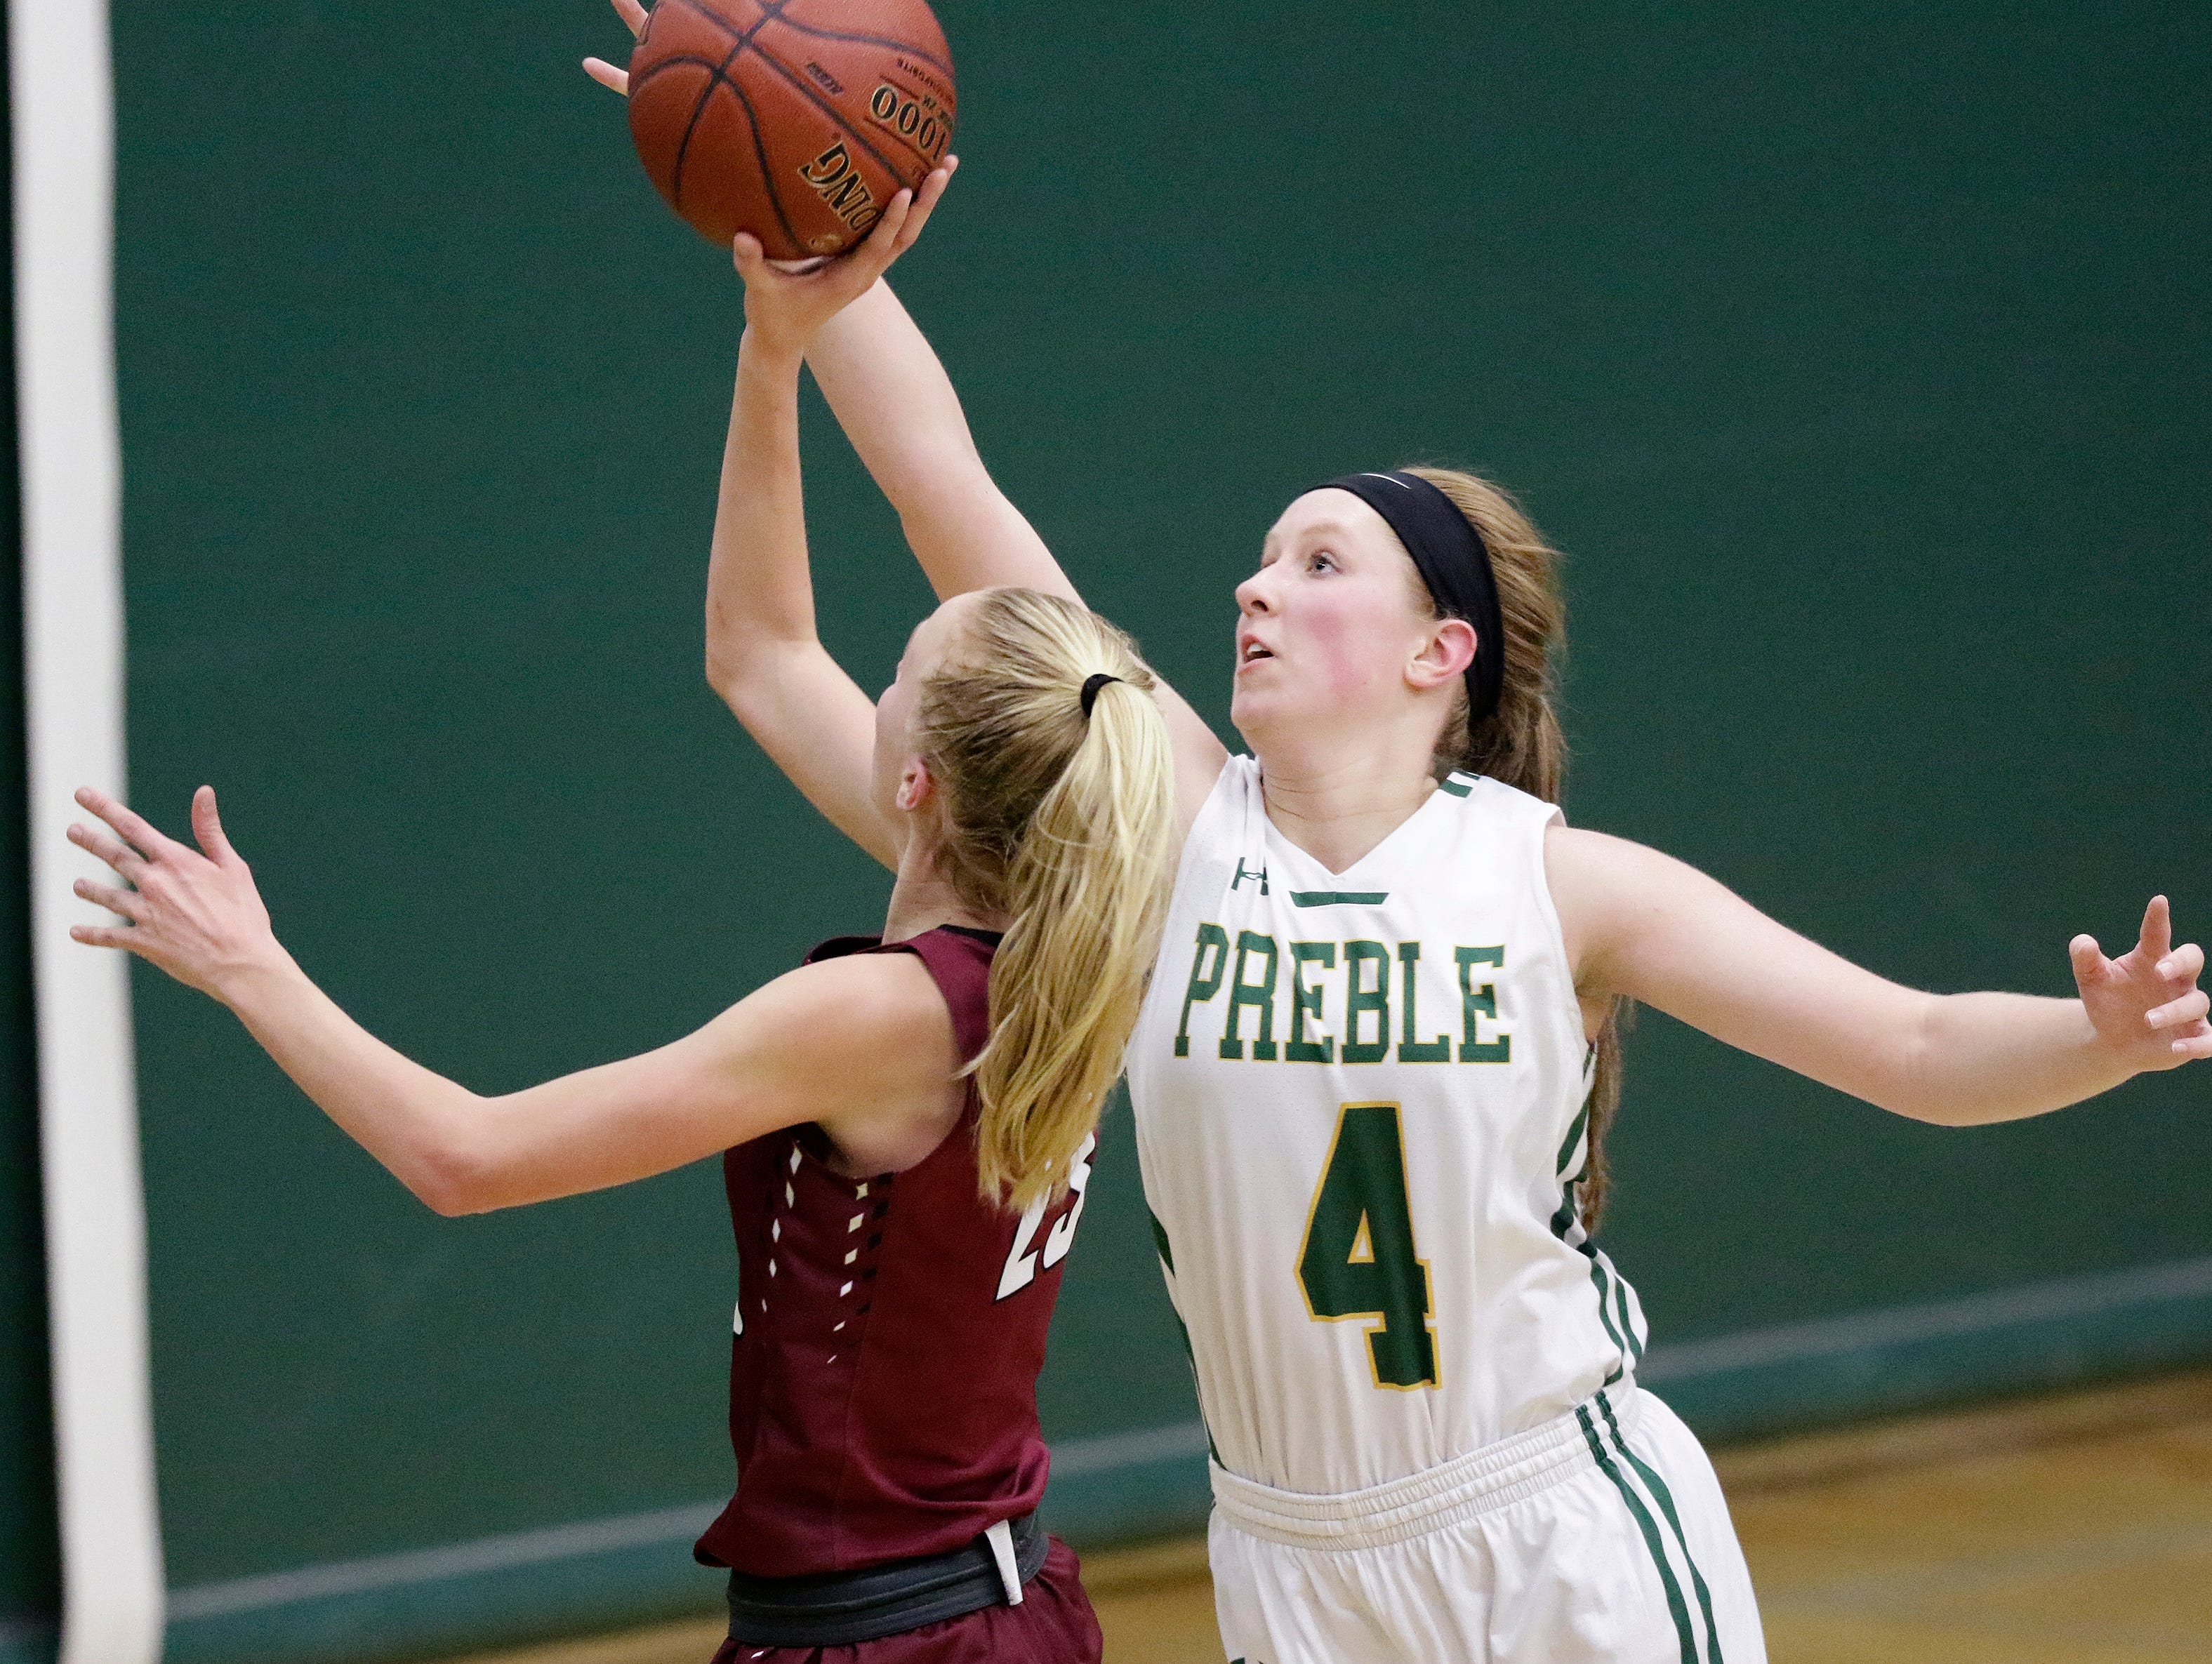 Green Bay Preble's Kendall Renard (4) guards De Pere's Jordan Meulemans (23) in a girls basketball game at Preble high school on Tuesday, January 8, 2019 in Green Bay, Wis.